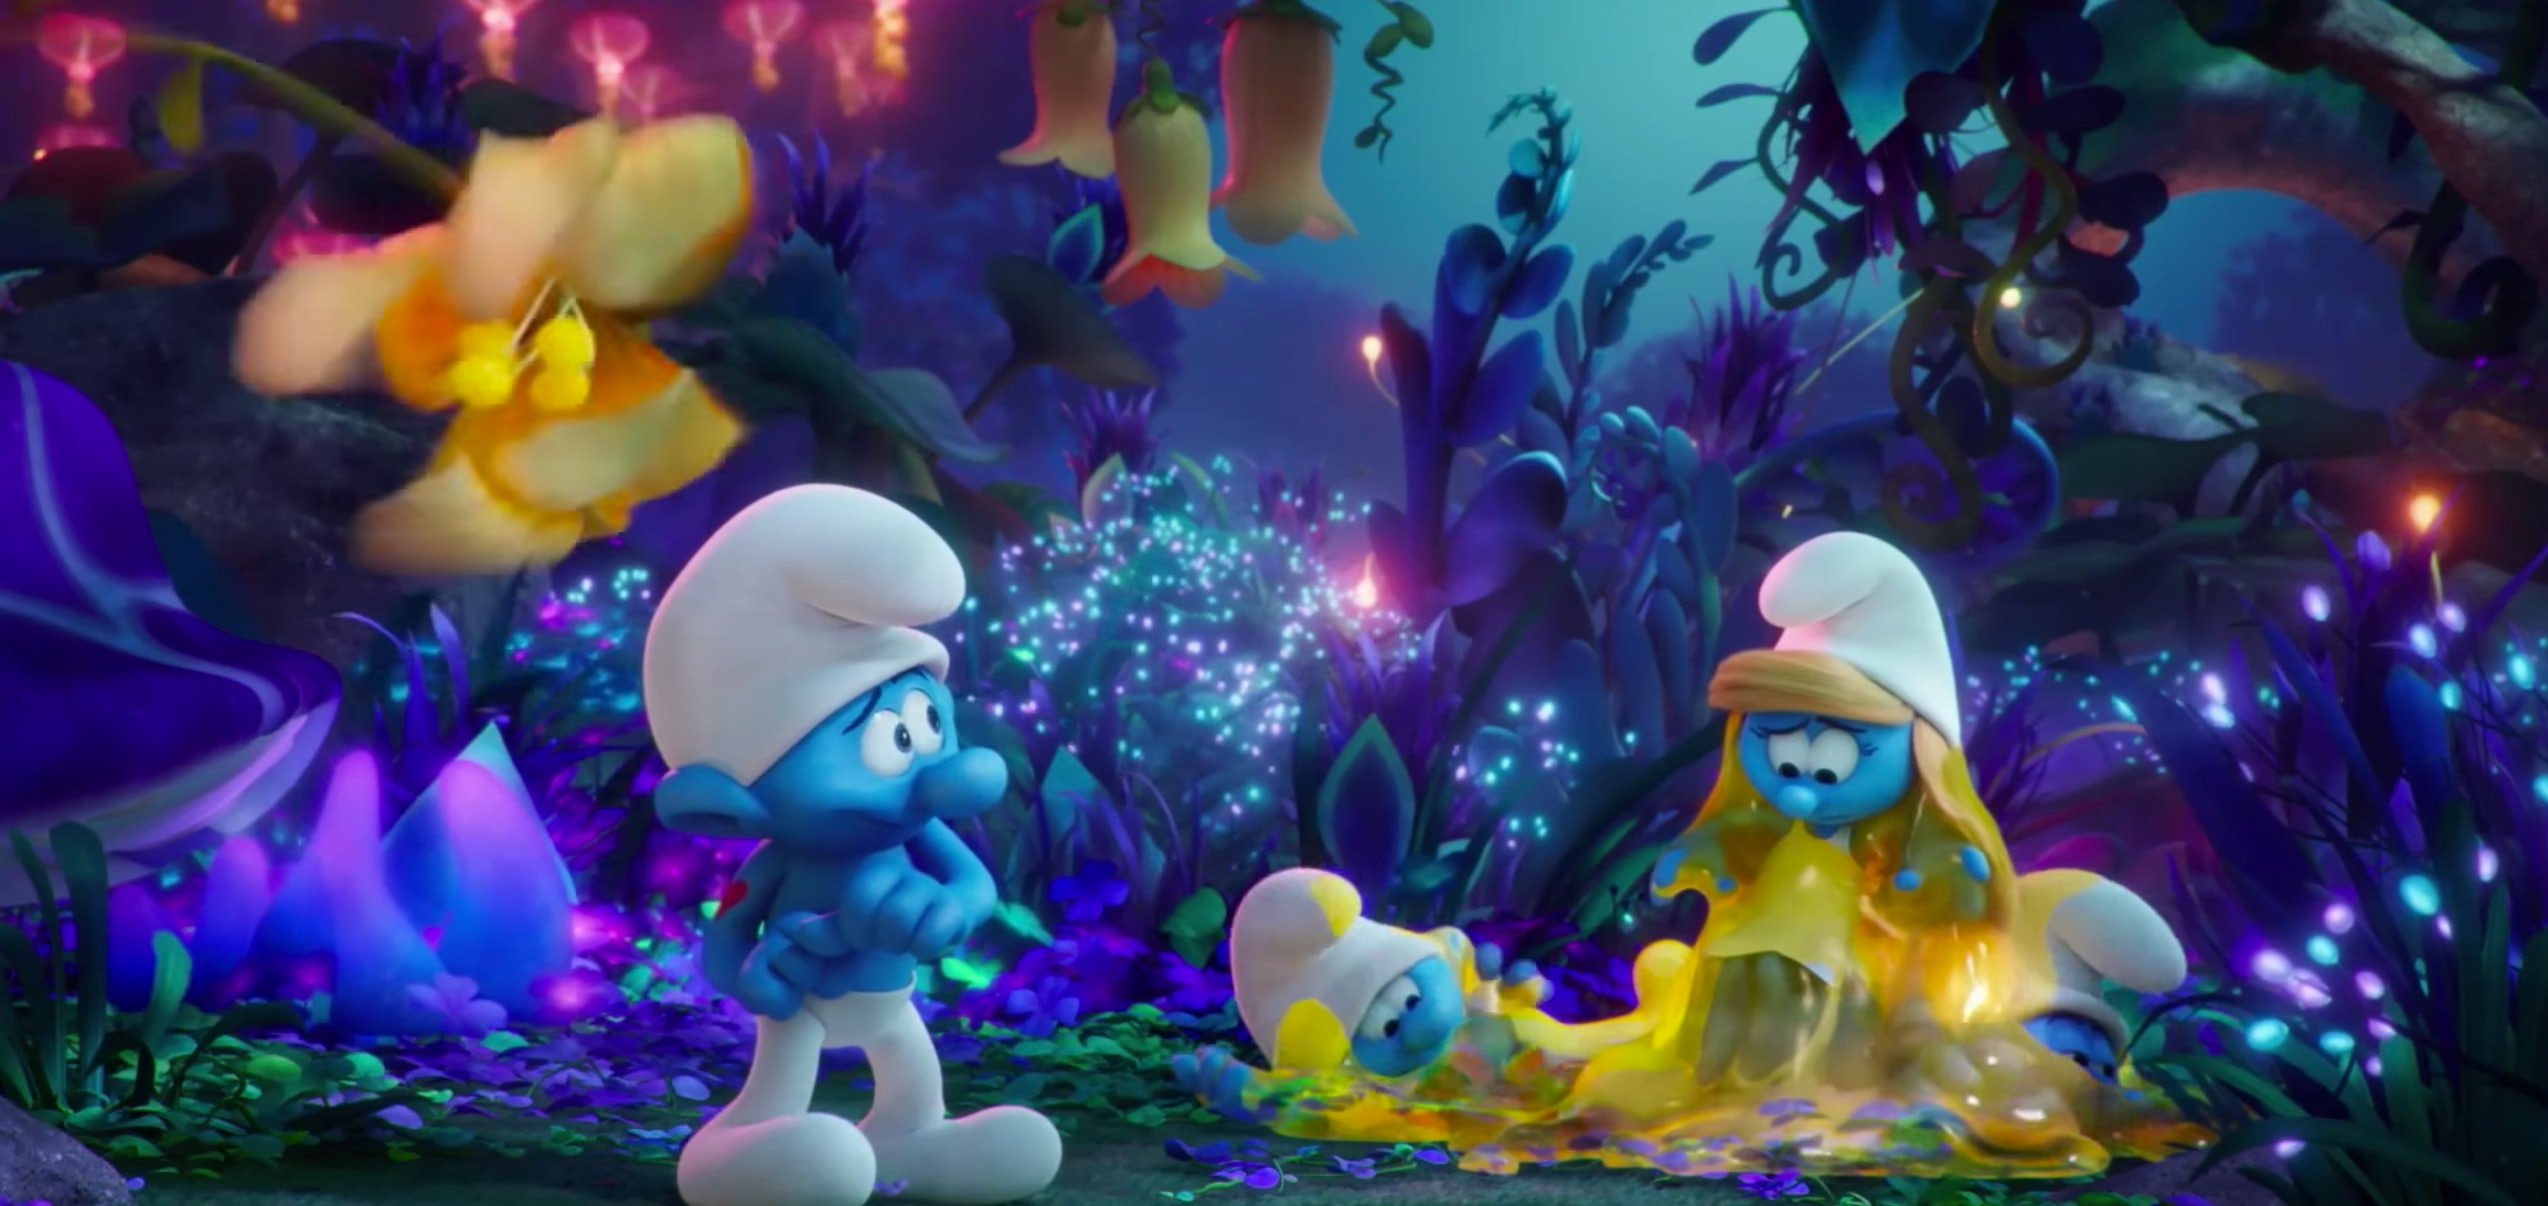 The Smurfs The Lost Village Trailer Song Is Going To Be Stuck In Your Head For Weeks Video